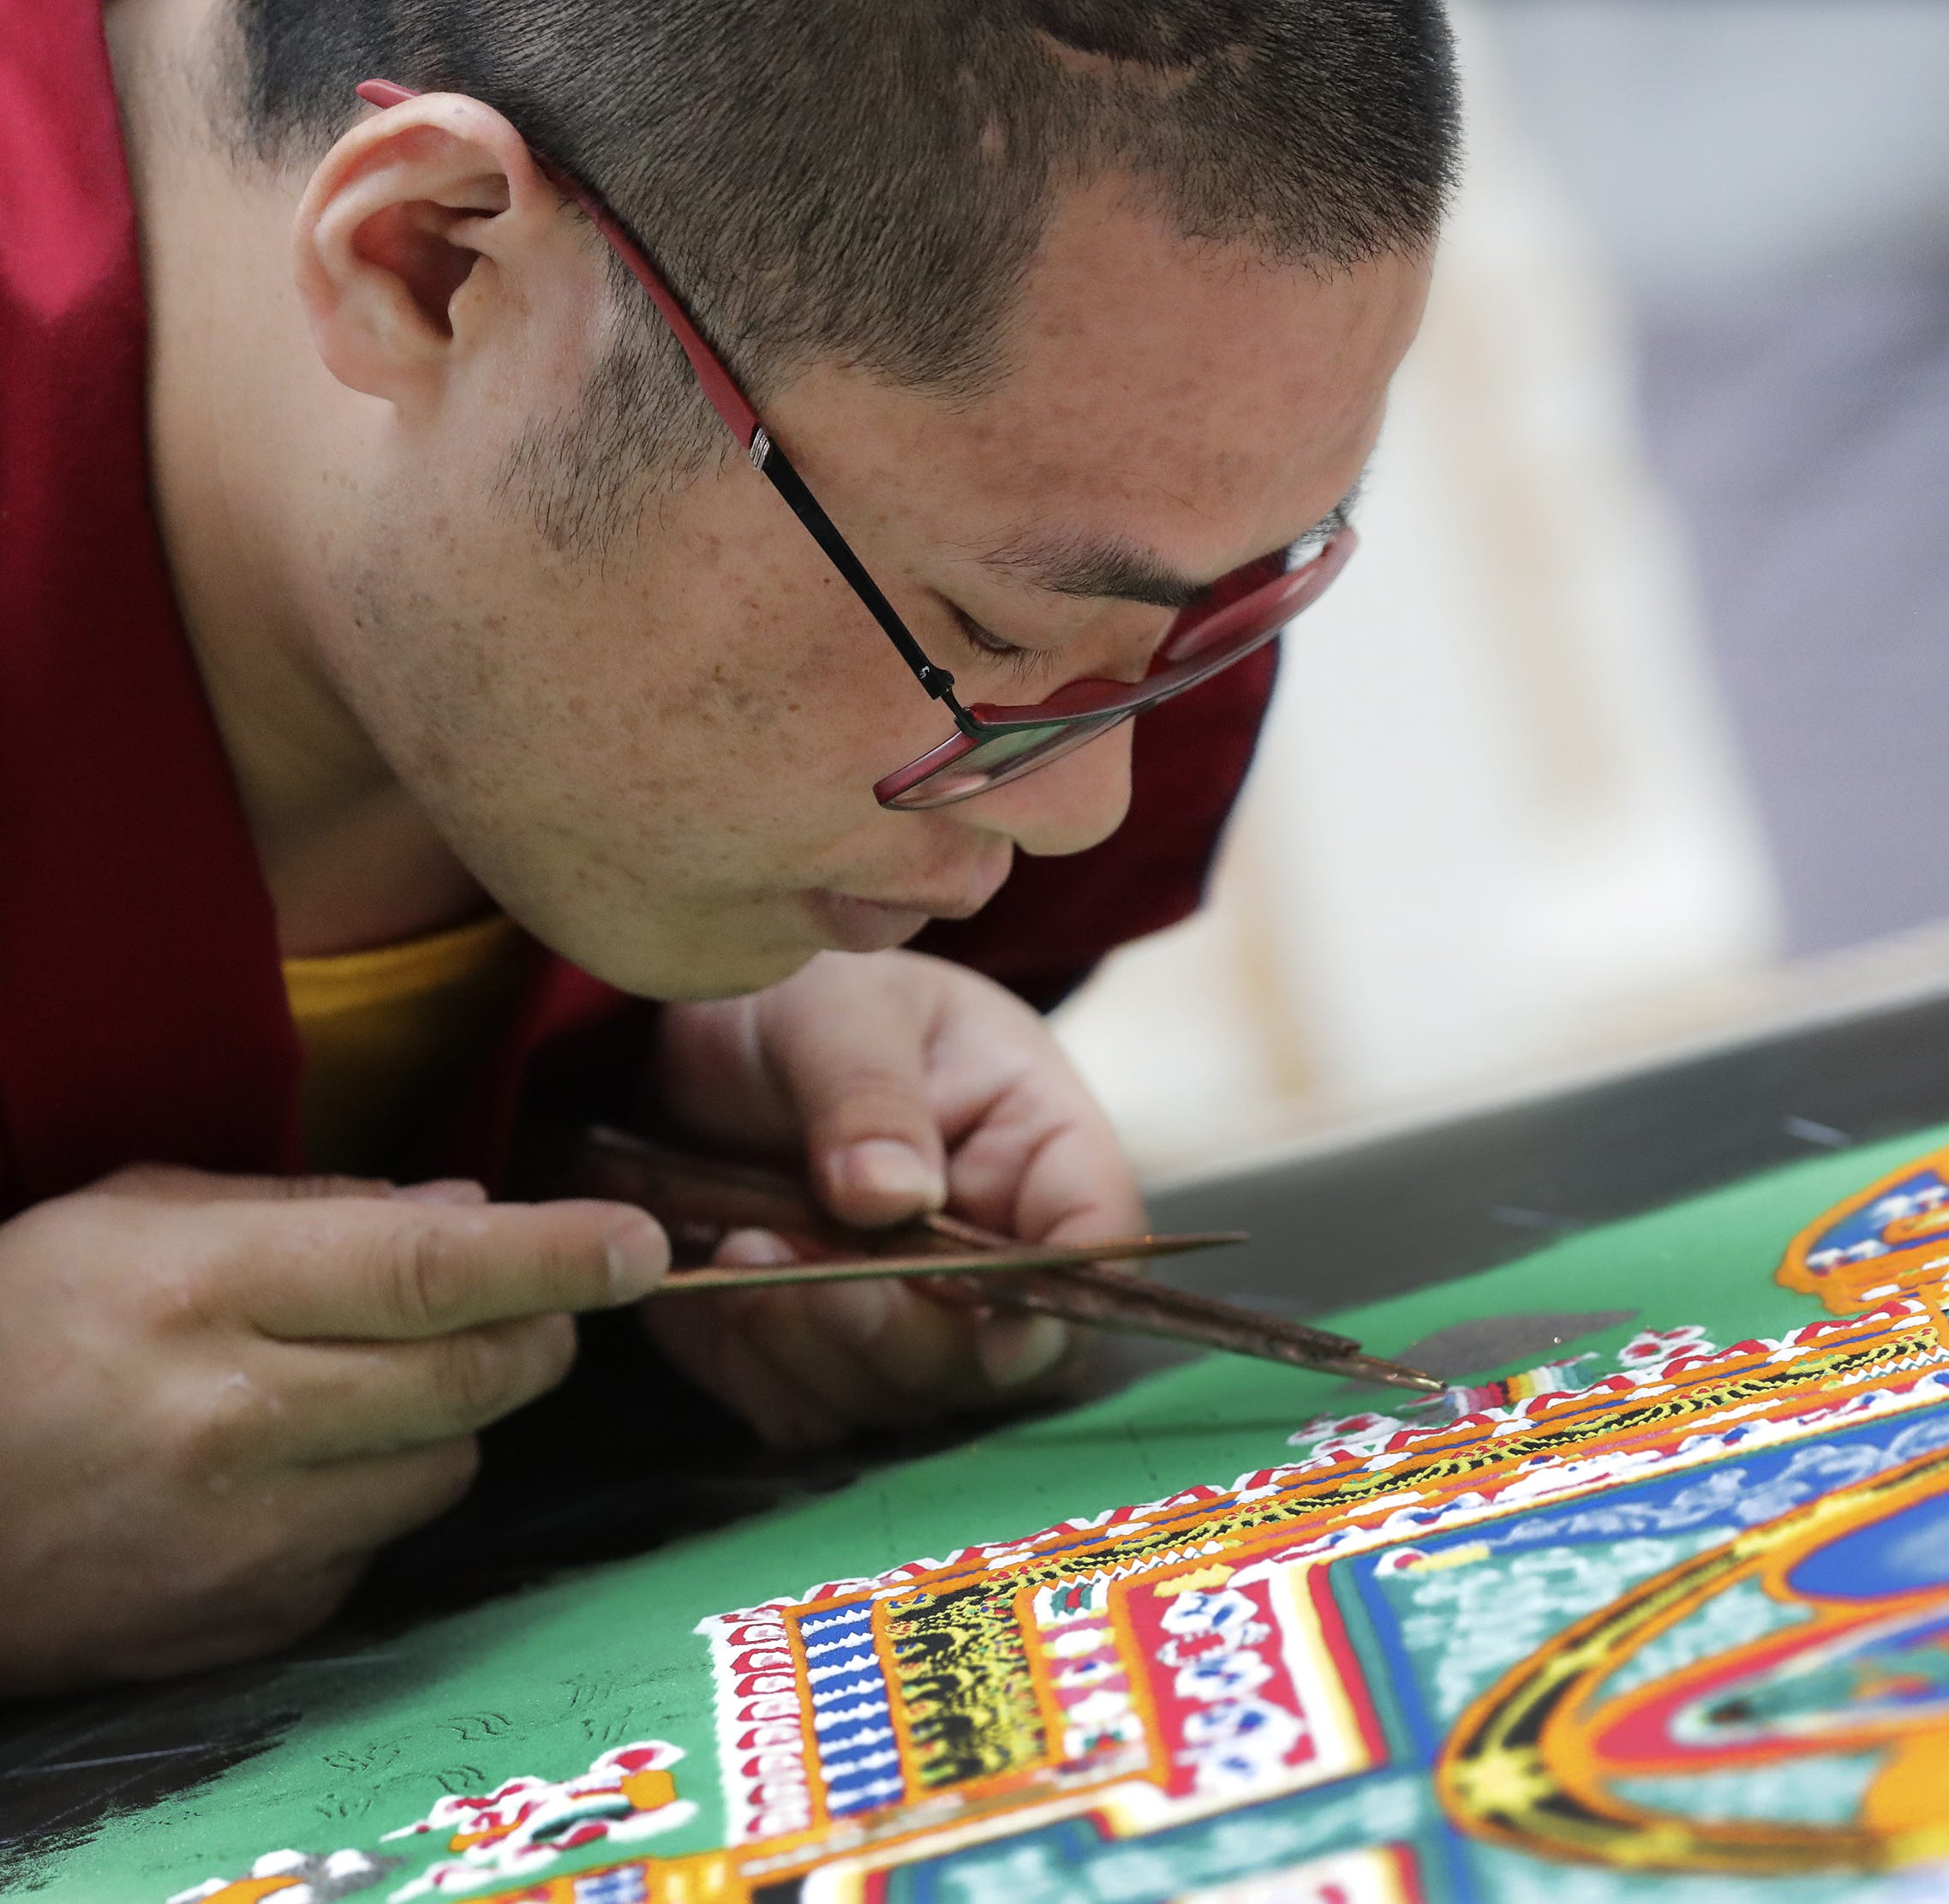 Buddhist monks from South India visit the Paine, create 'compassion' sand mandala